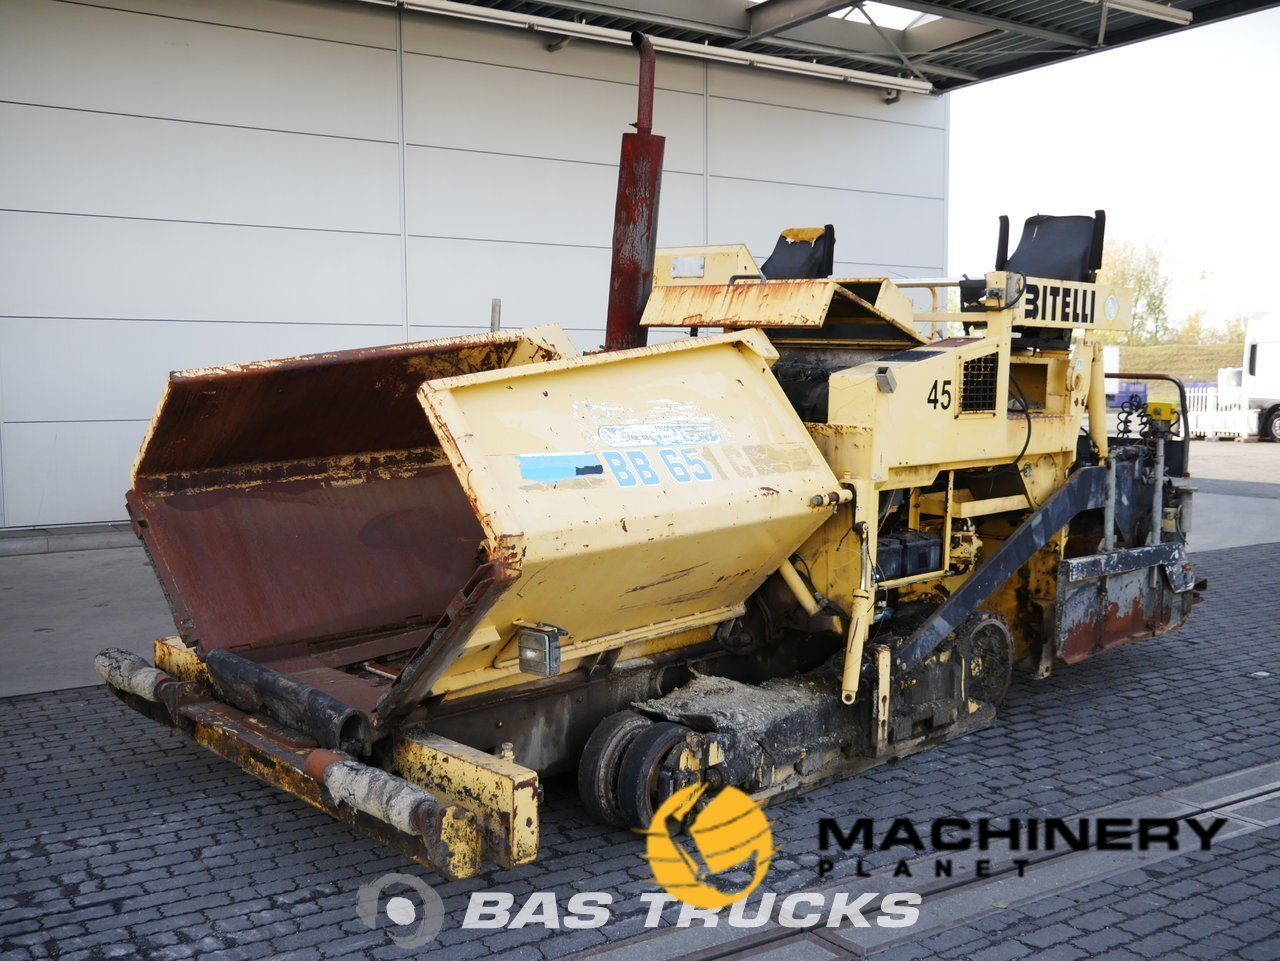 Used-Construction-equipment-Bitelli-BB-651C-2002_142200_1-1554127230559_5ca2197e8892d-1.jpg